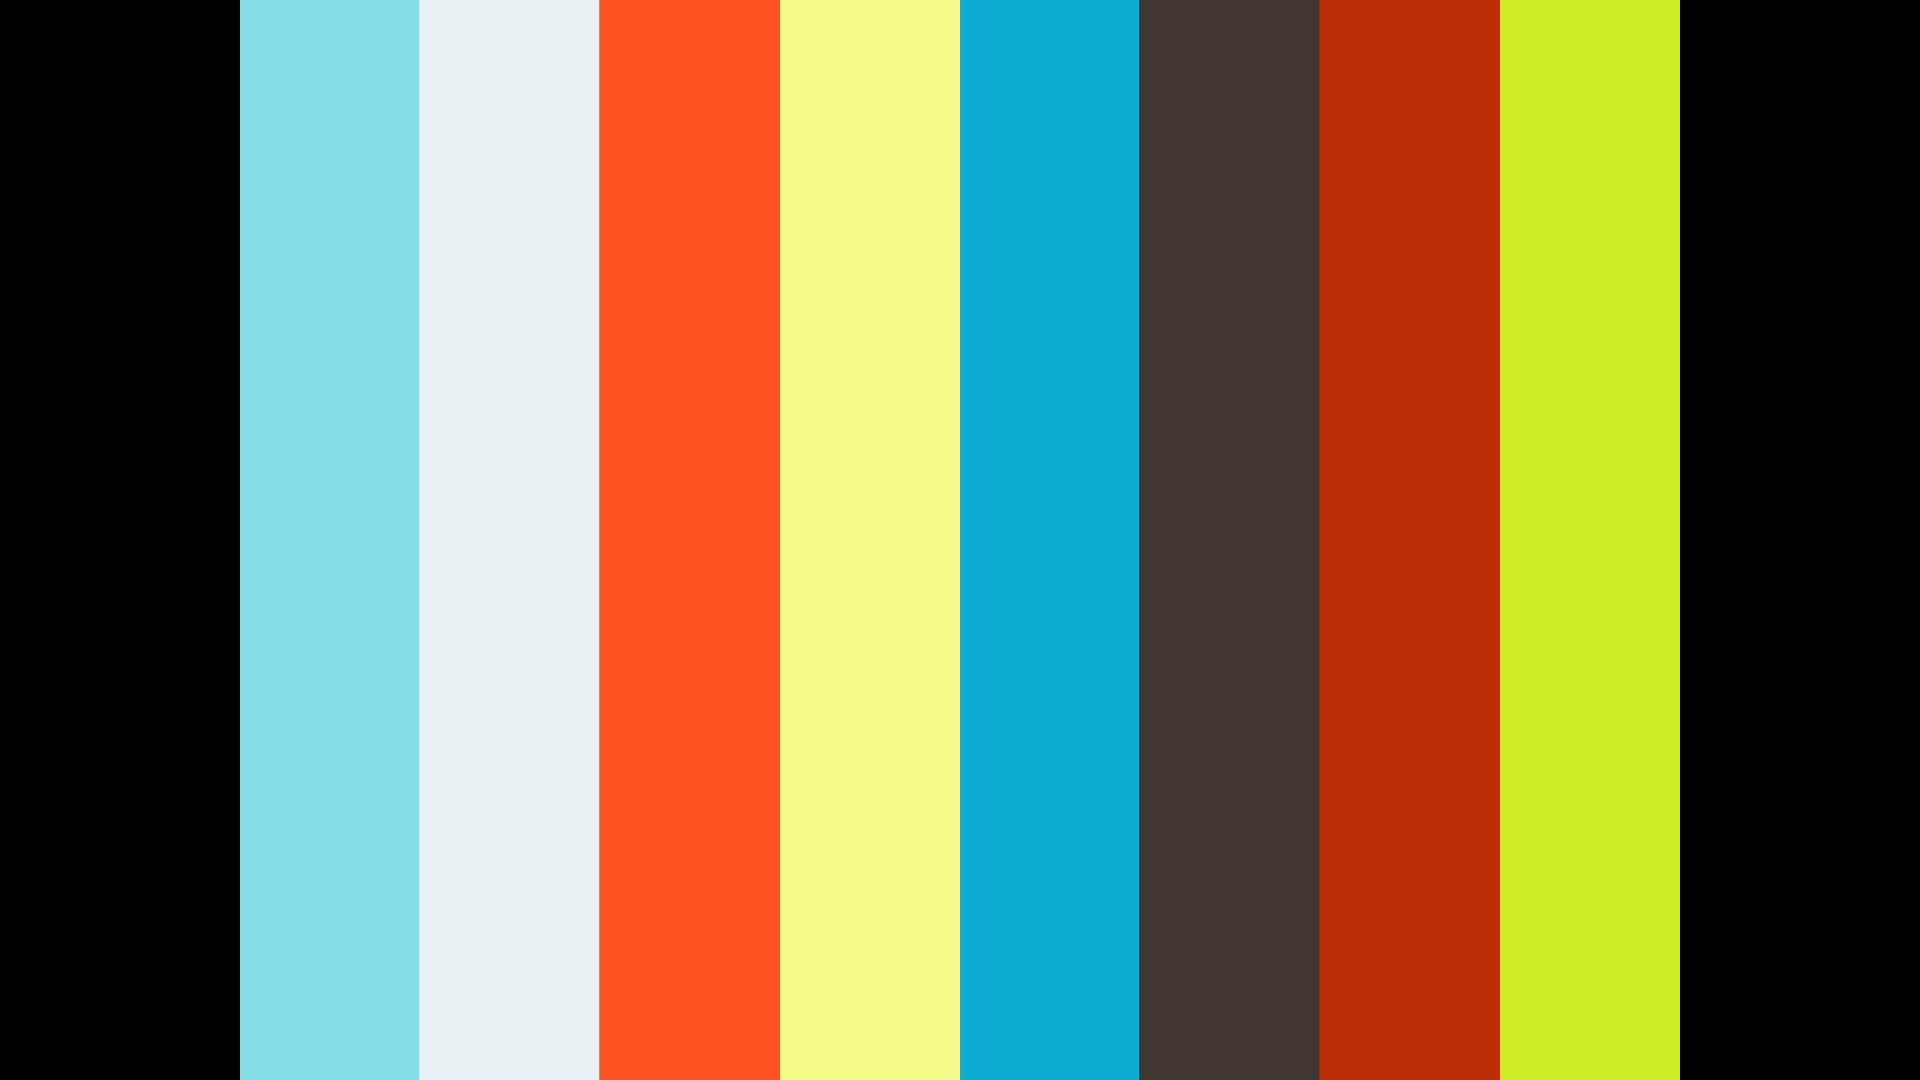 Number 3 - Gianna Reynolds - AIR